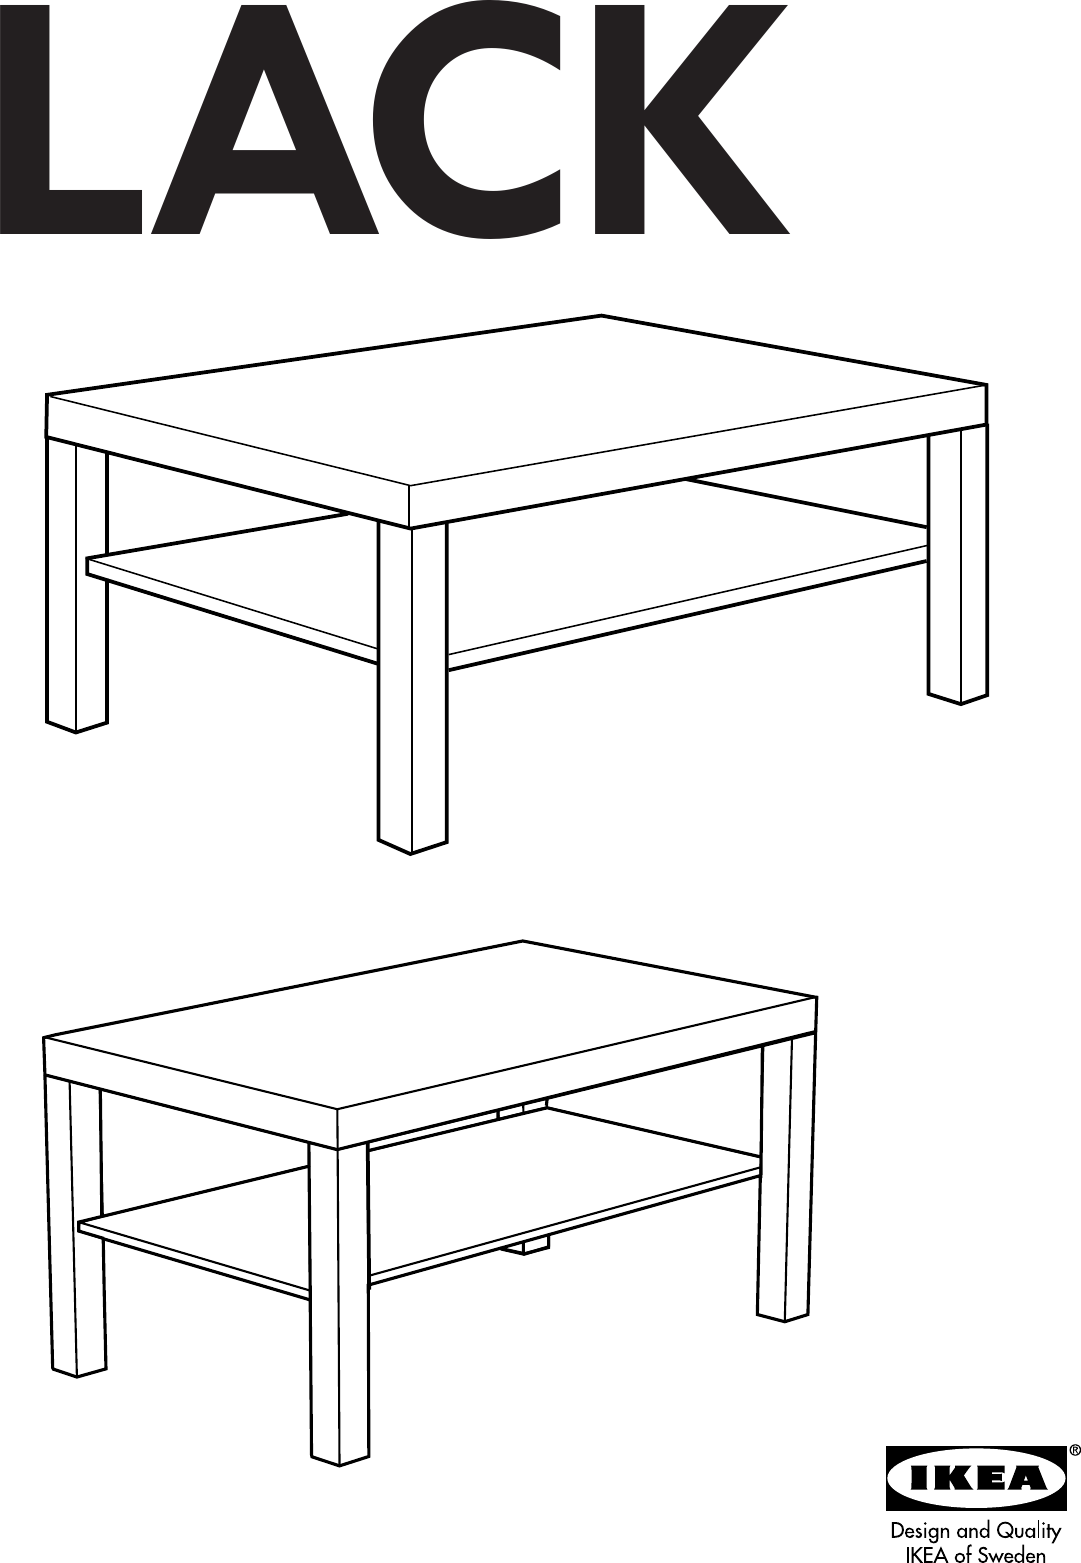 Ikea Lack Coffee Table 35x22x18 Assembly Instruction [ 1563 x 1081 Pixel ]